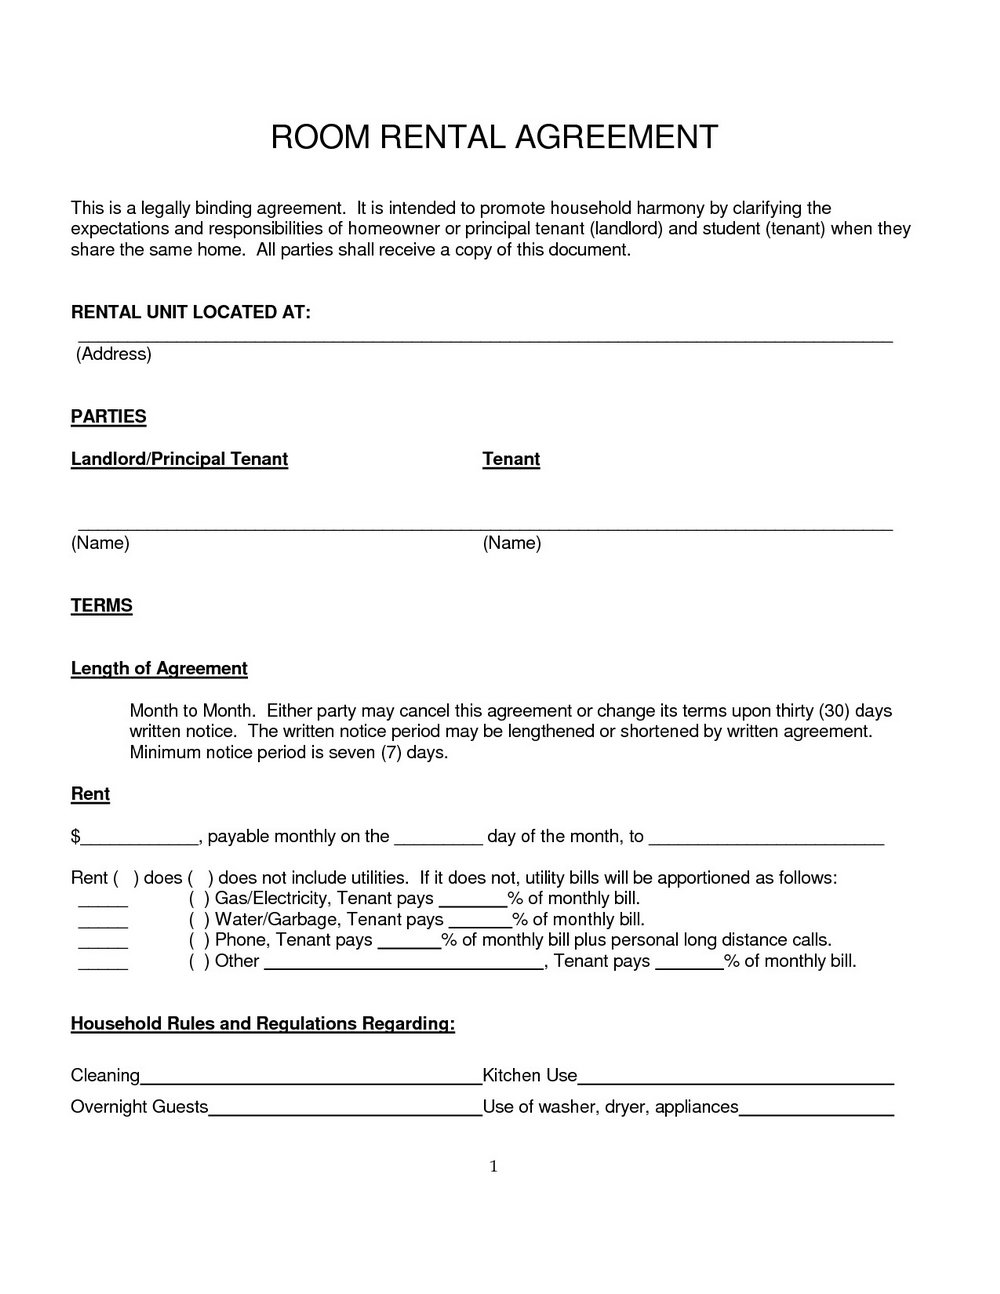 Room Rental Agreement Template Uk